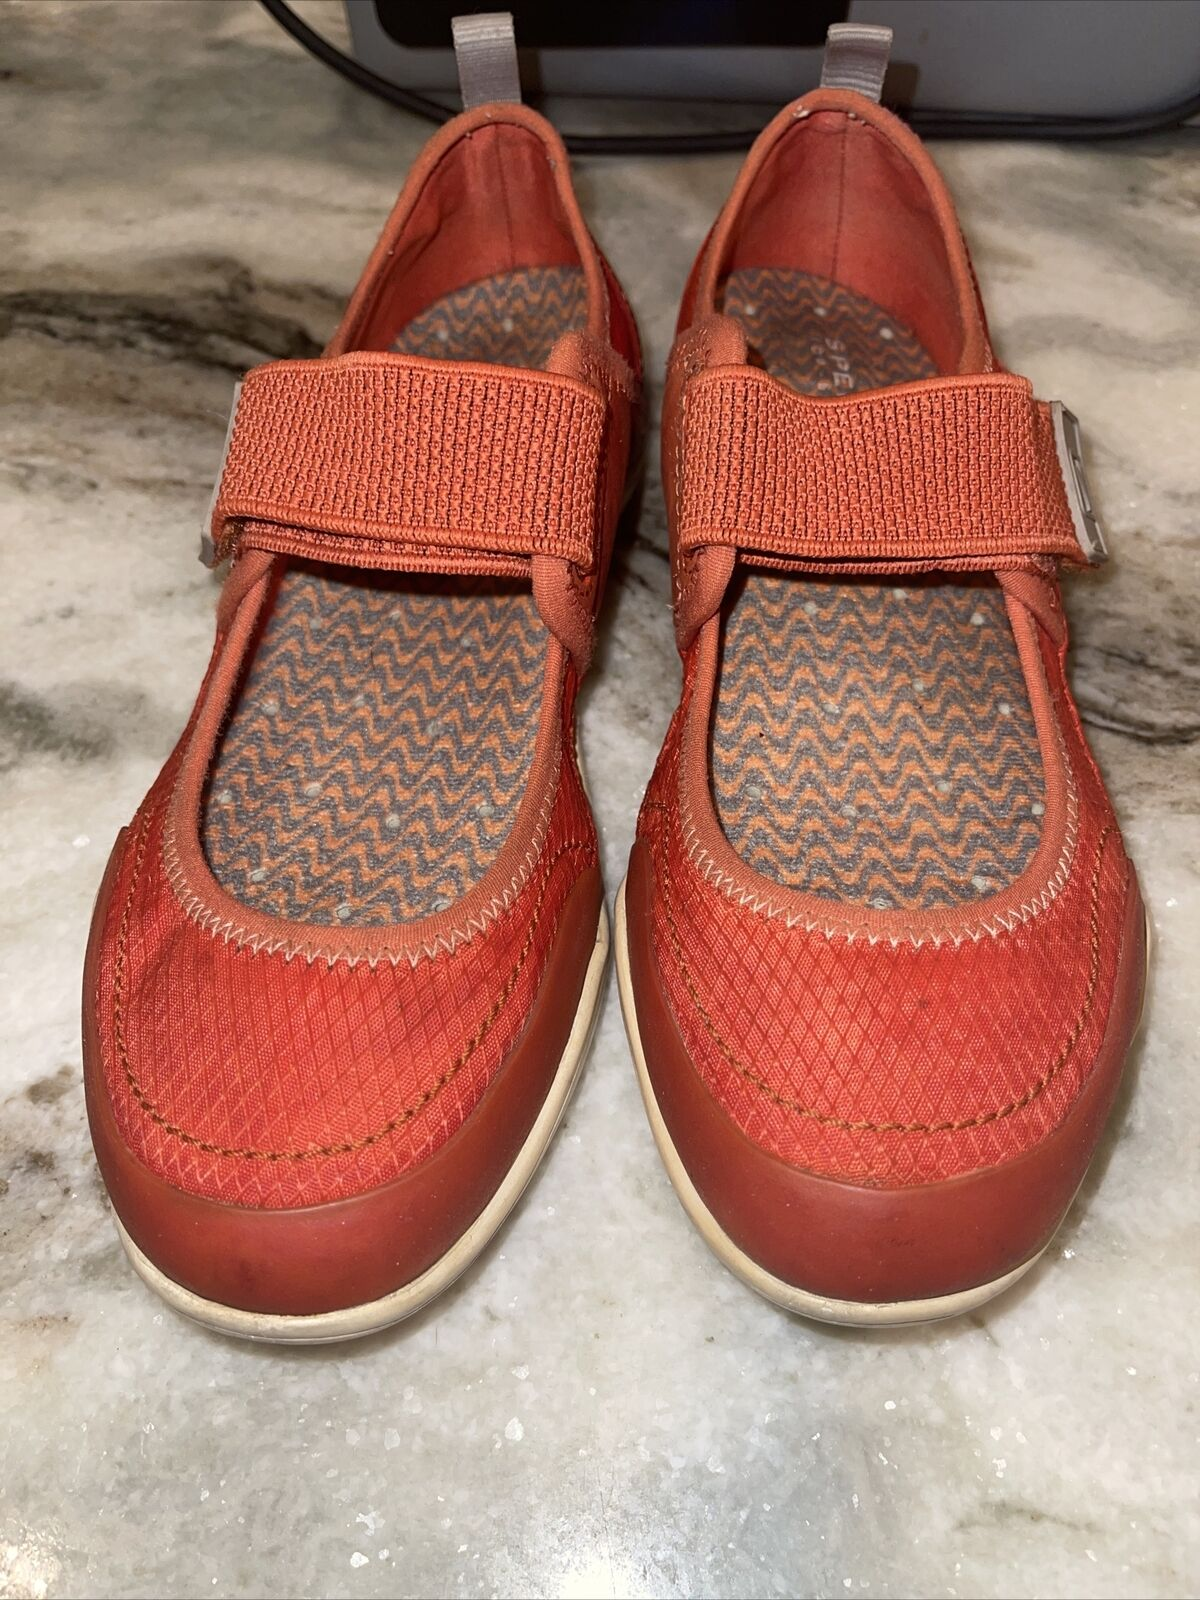 Sperry Women's Top-Sider SON-R Lifestyle Mary Jane Slip On Shoes 9435744 size 6M